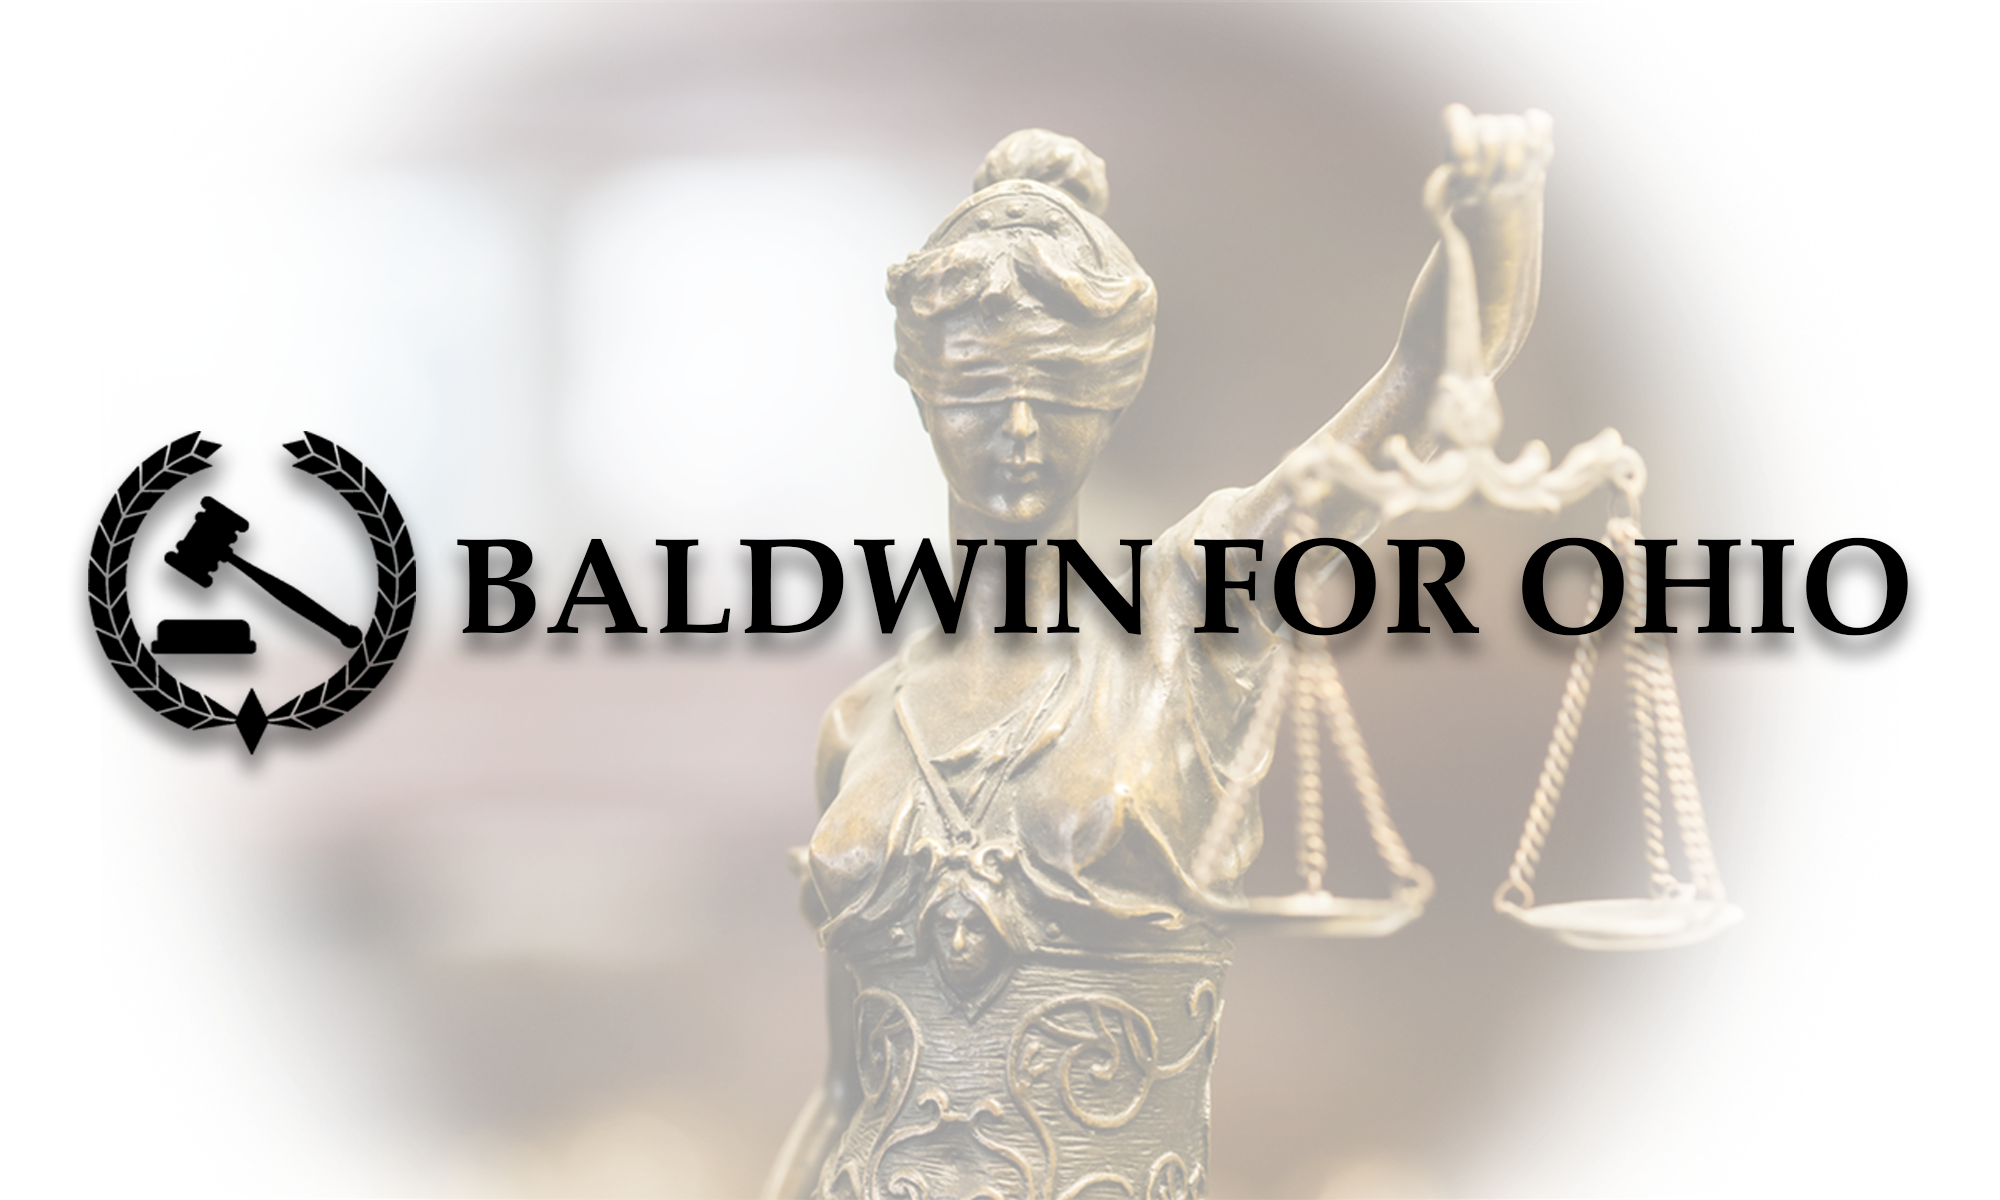 Baldwin For Ohio